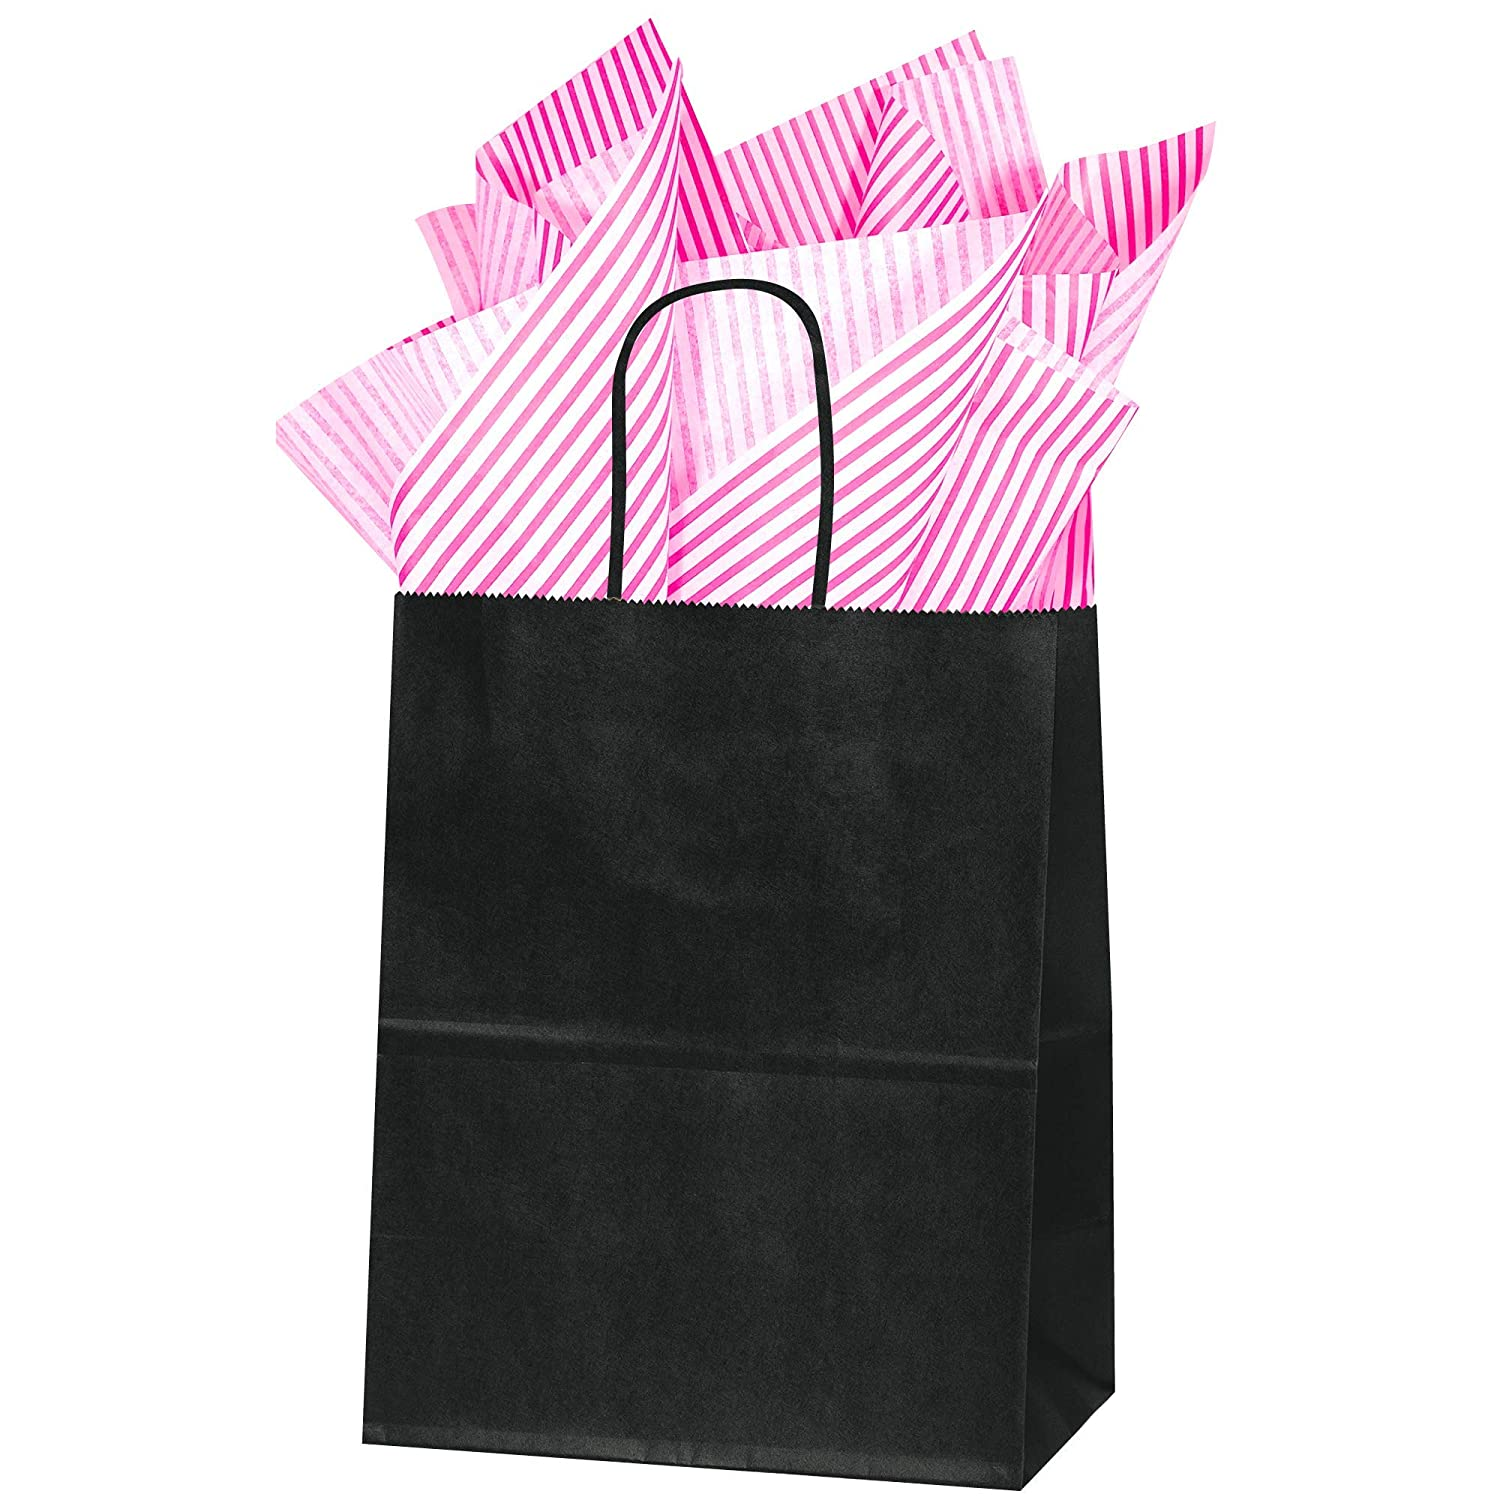 50 Sheets Color Count Flexicore Packaging Hot Pink Pin Stripe Print Gift Wrap Tissue Paper Size Hot Pink Pin Stripe 15 Inch X 20 Inch